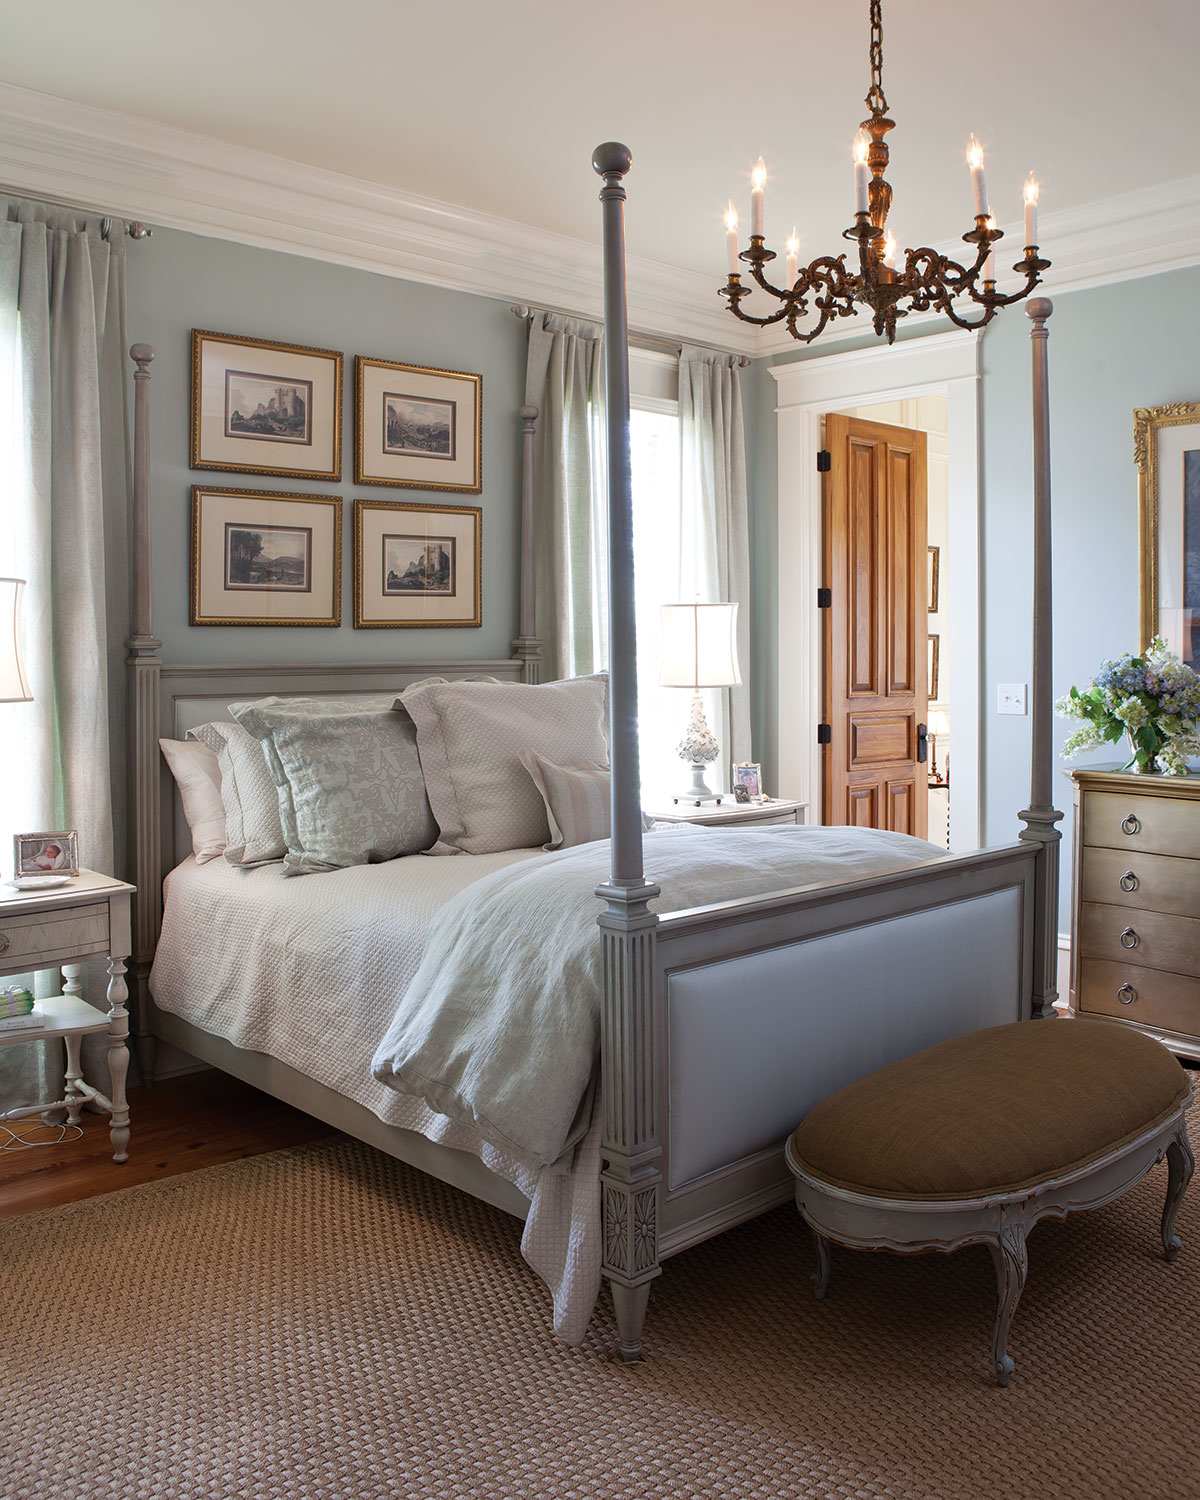 10 dreamy southern bedrooms page 3 of 10 southern lady magazine Southern home decor on pinterest